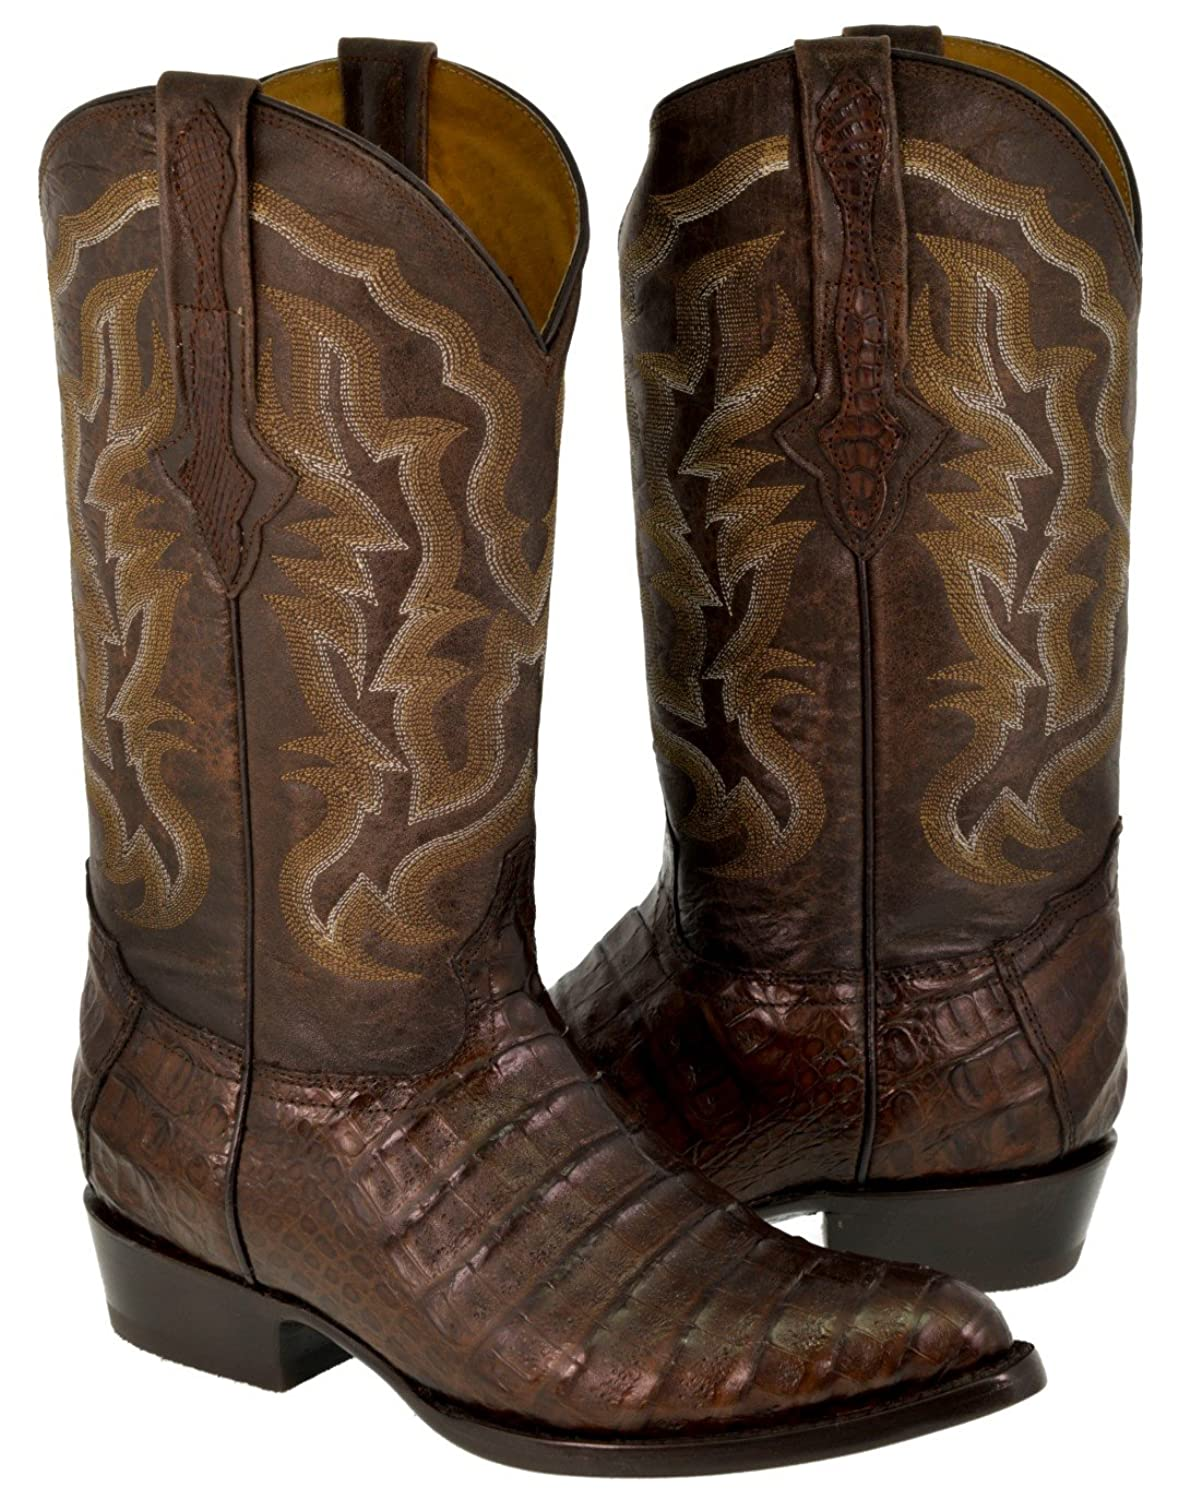 Men's Brown Real Crocodile Skin Leather Cowboy Boots J Toe 13.5 D